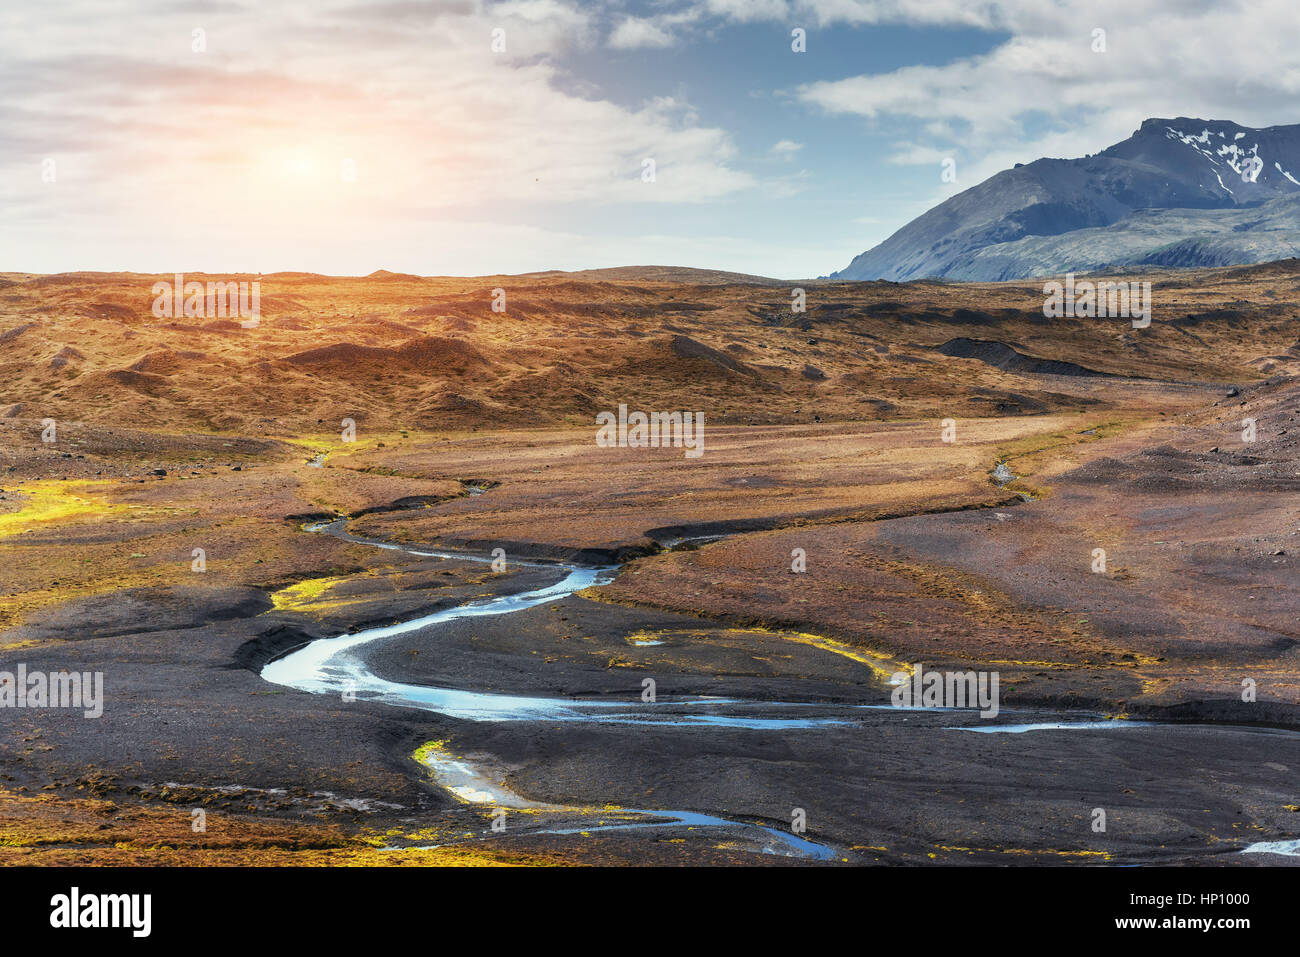 The beautiful landscape of mountains and rivers in Iceland. Stock Photo